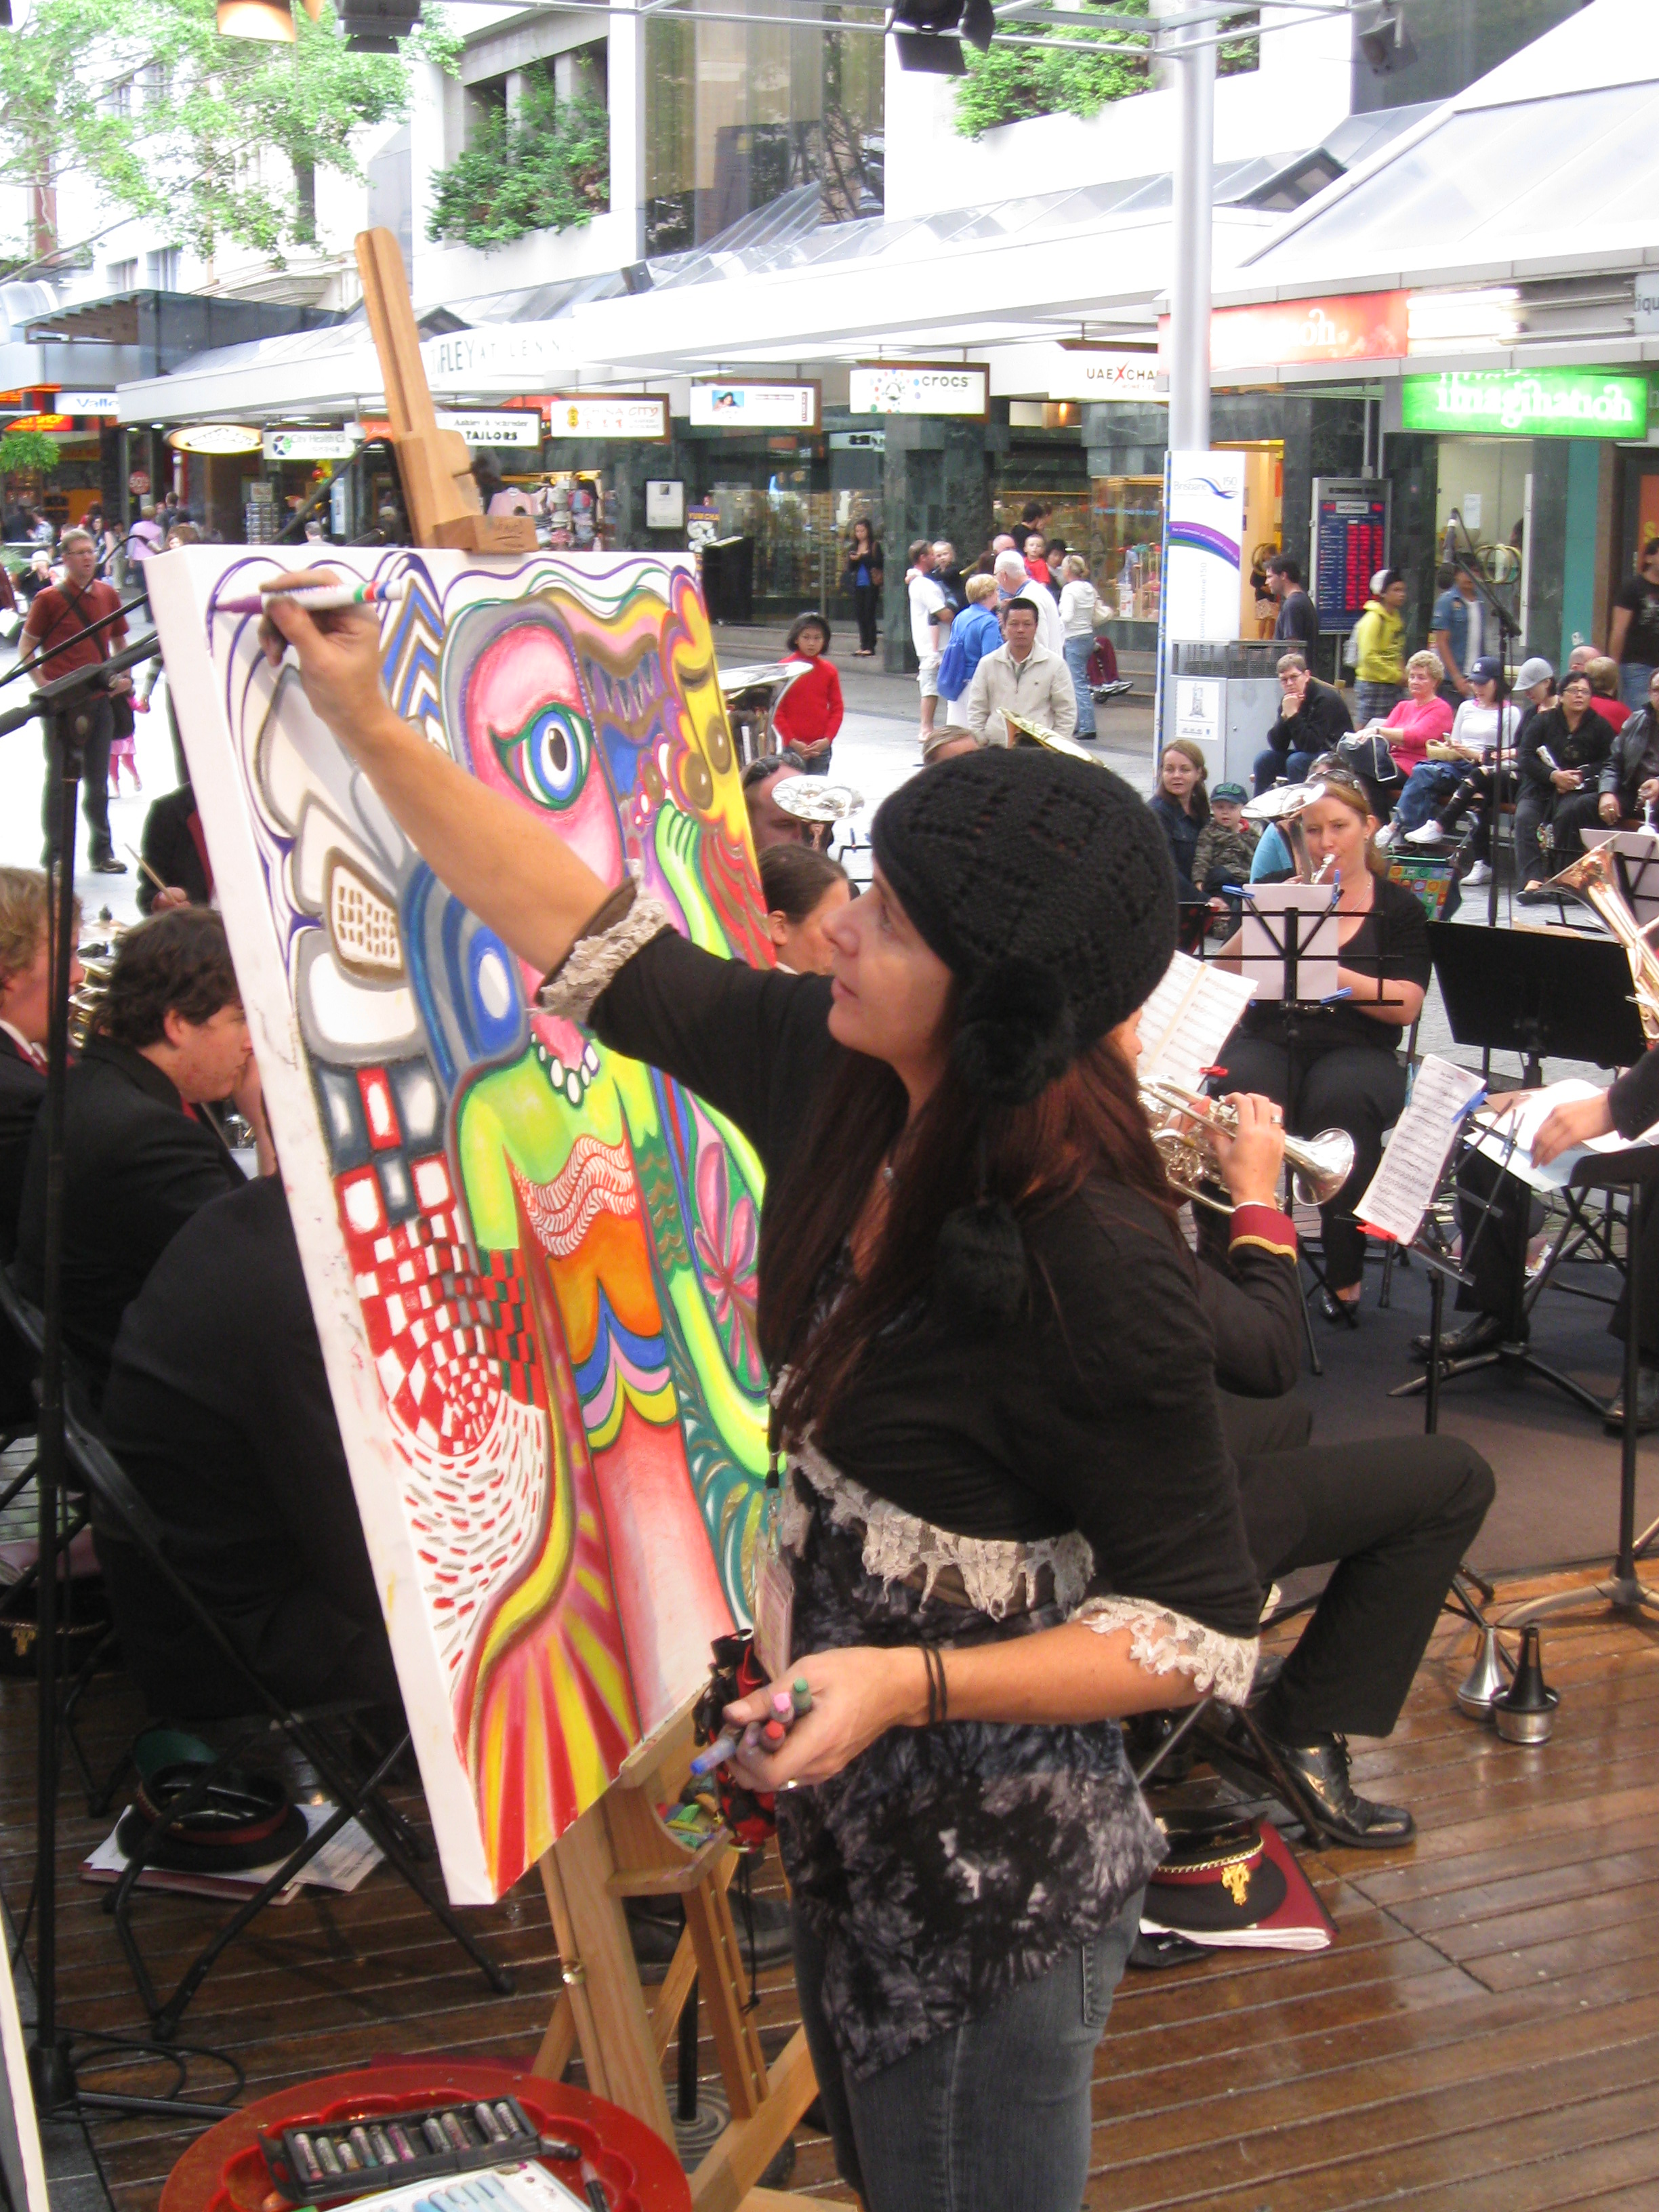 Live Art Performances - Zest Events International